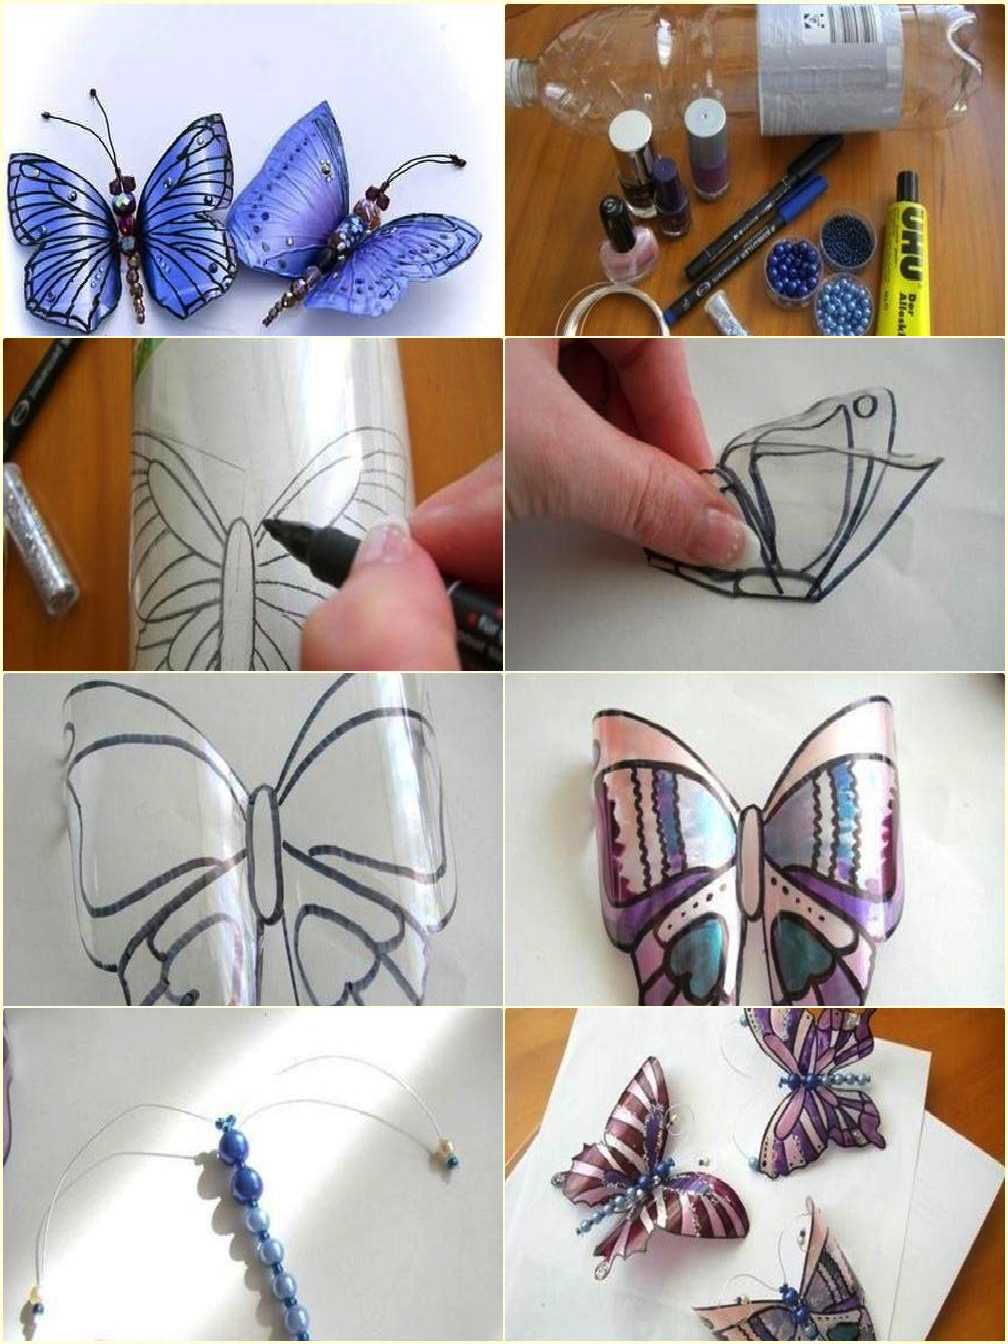 Butterflies from a plastic bottle with their own hands. Butterfly Patterns 67